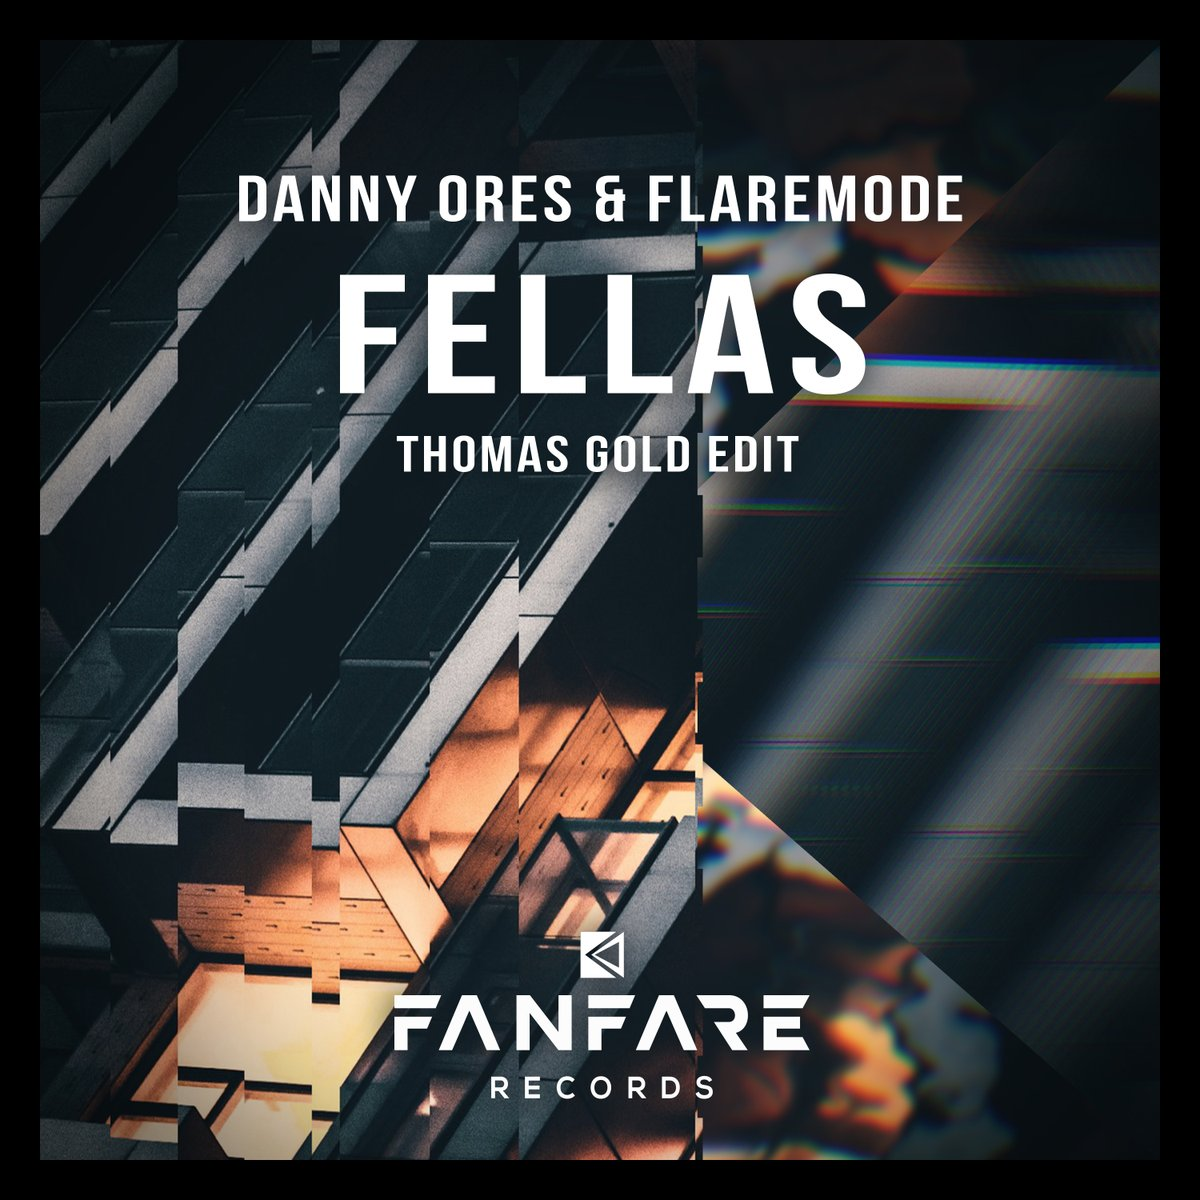 A brand new song with @thomasgold & @dannyoresmusic  is out now via @FanfareRec https://t.co/irMsW7EnwP